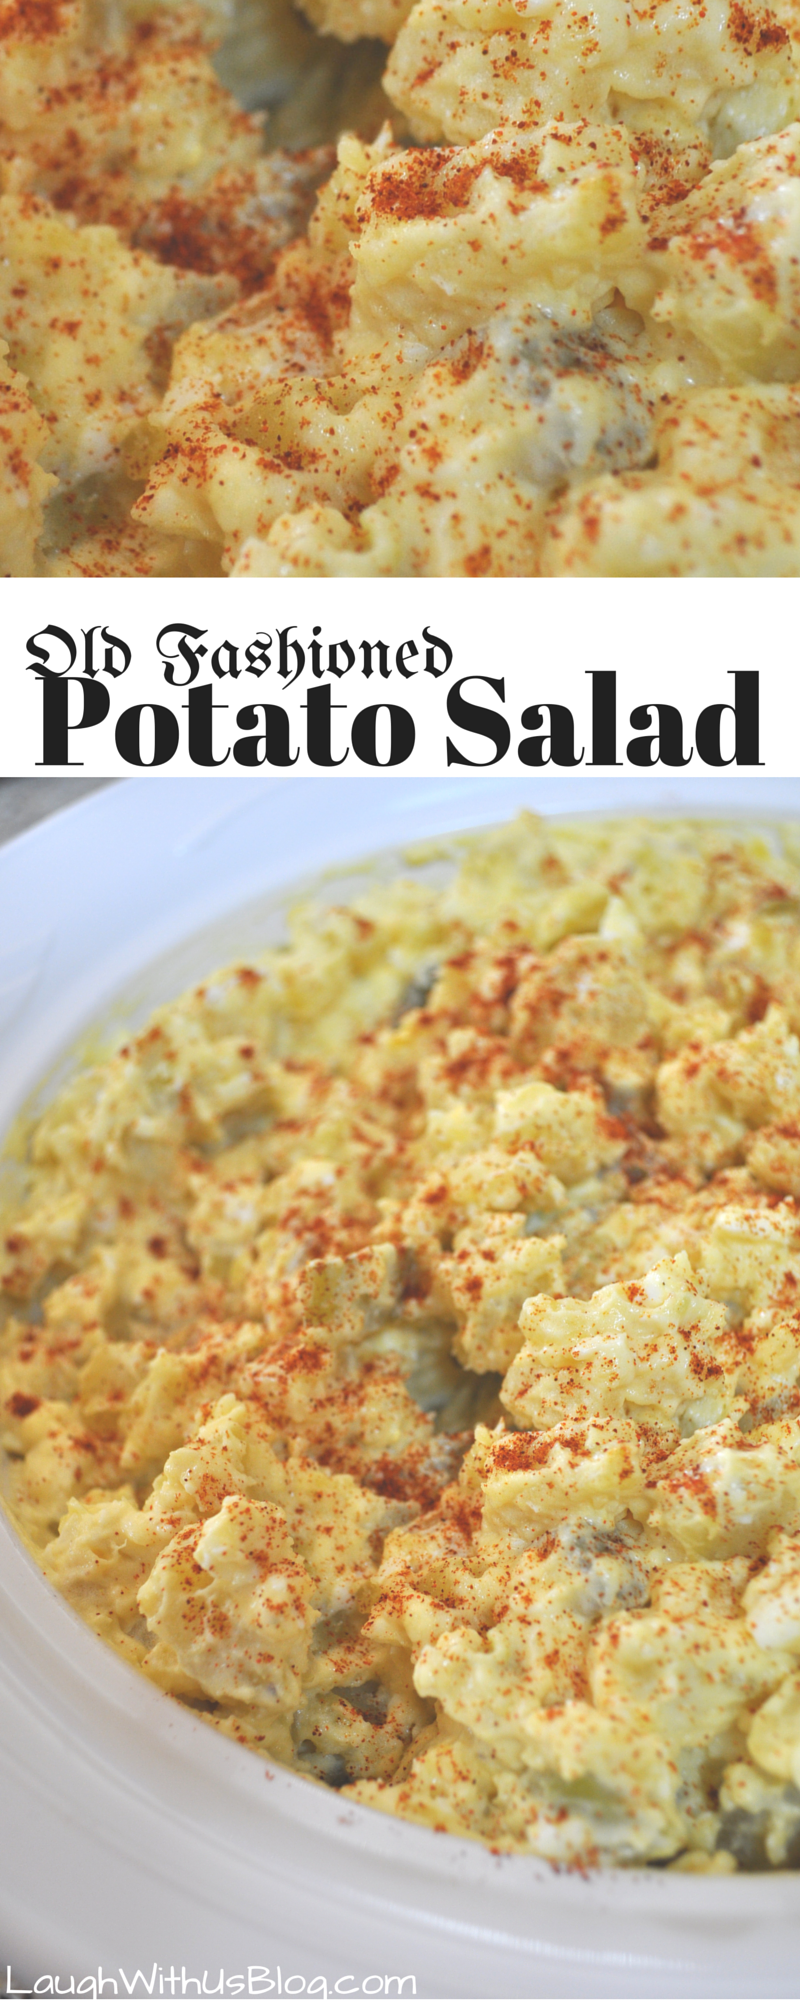 Fashioned Potato Salad Old Fashioned Potato Salad--recipe passed down generations, so good!Down  Down is the relative vertical direction opposed to up.   Down may also refer to: